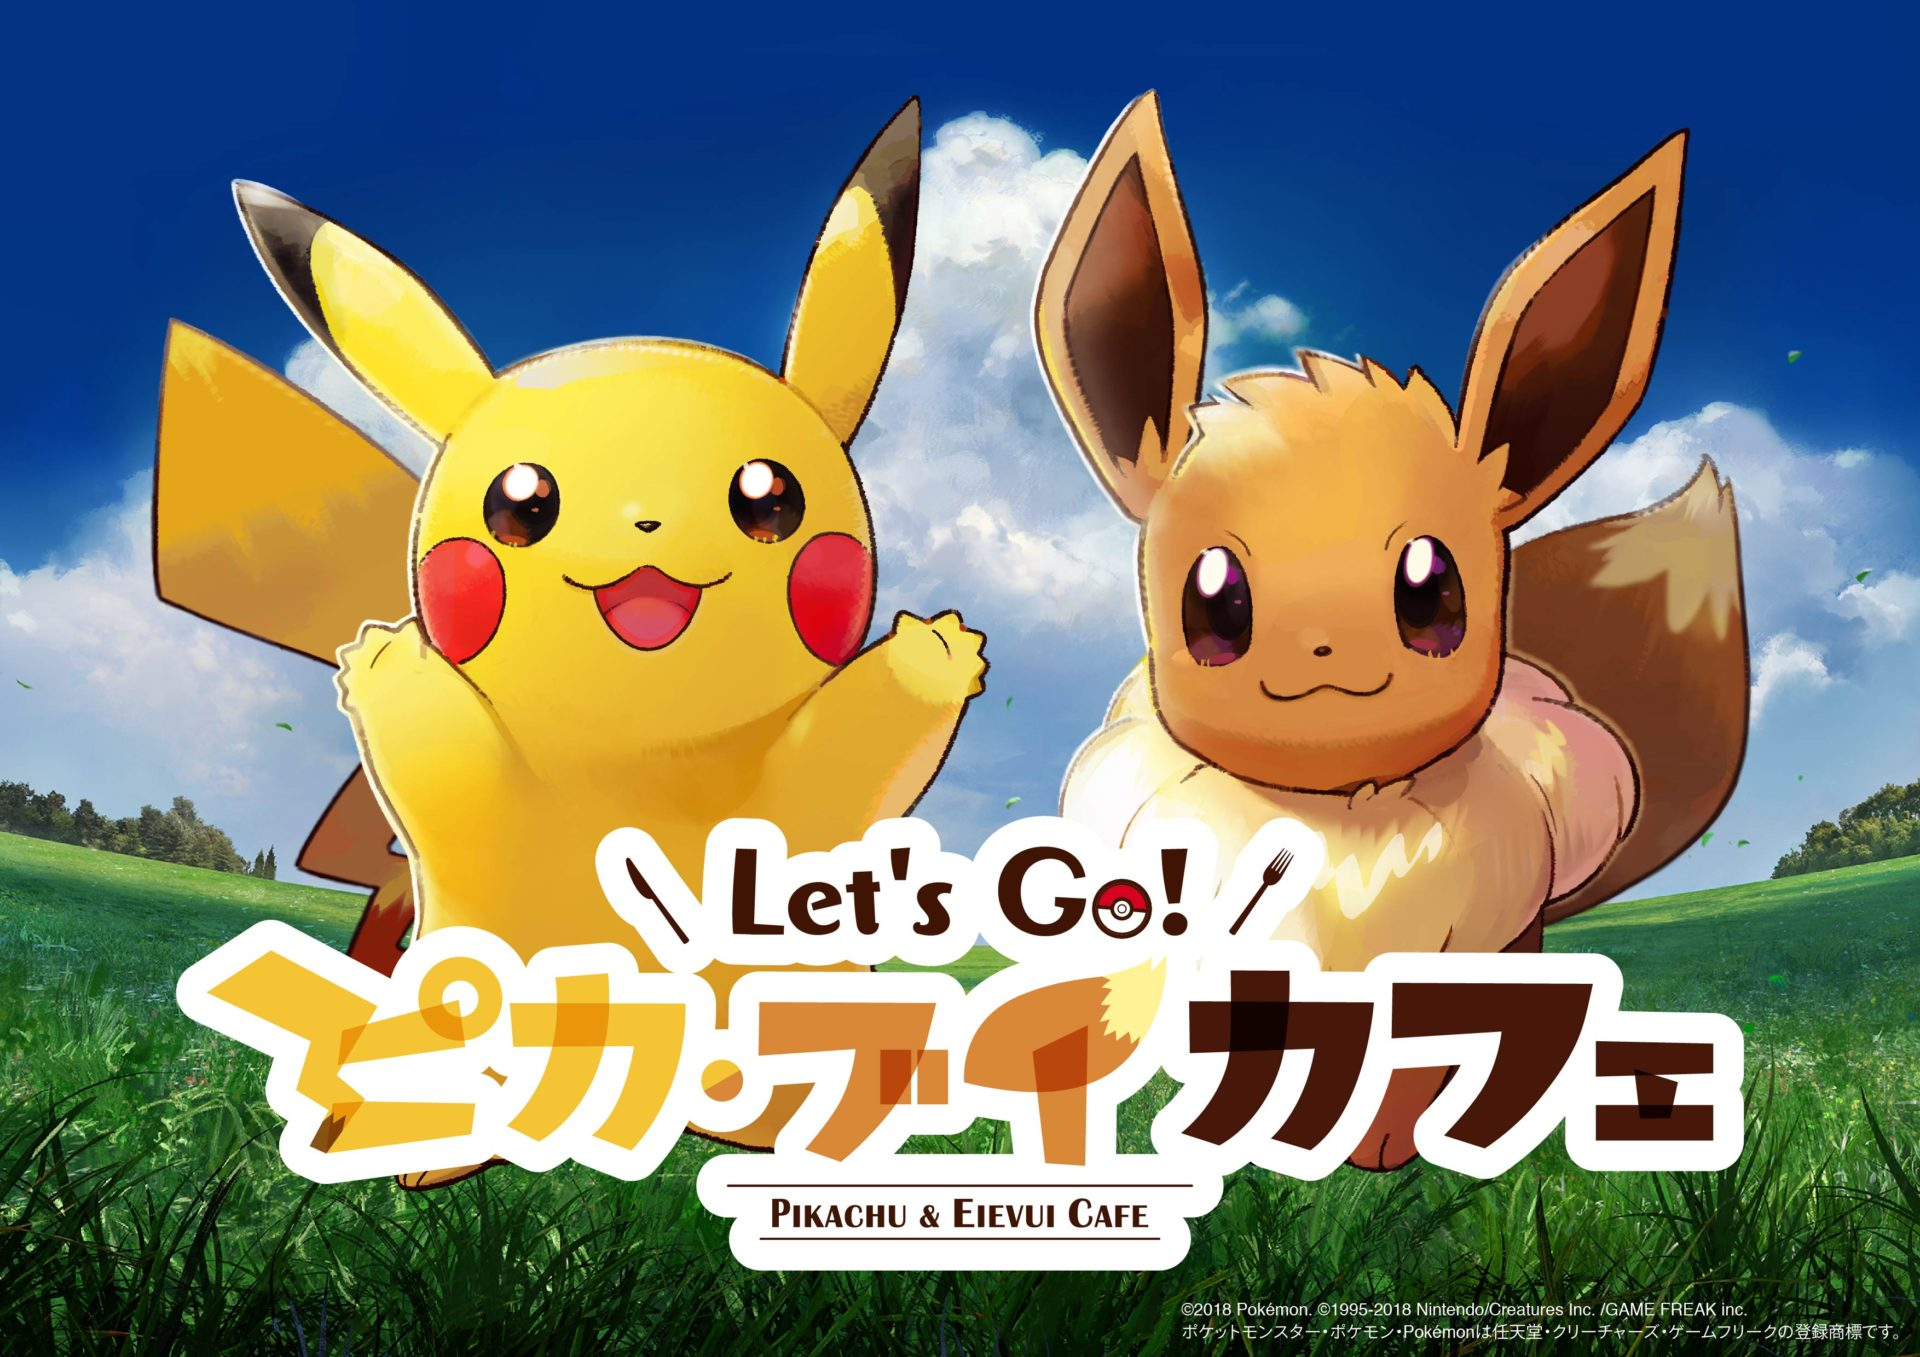 Pokemon Let's Go Pikachu Eevee Cafe